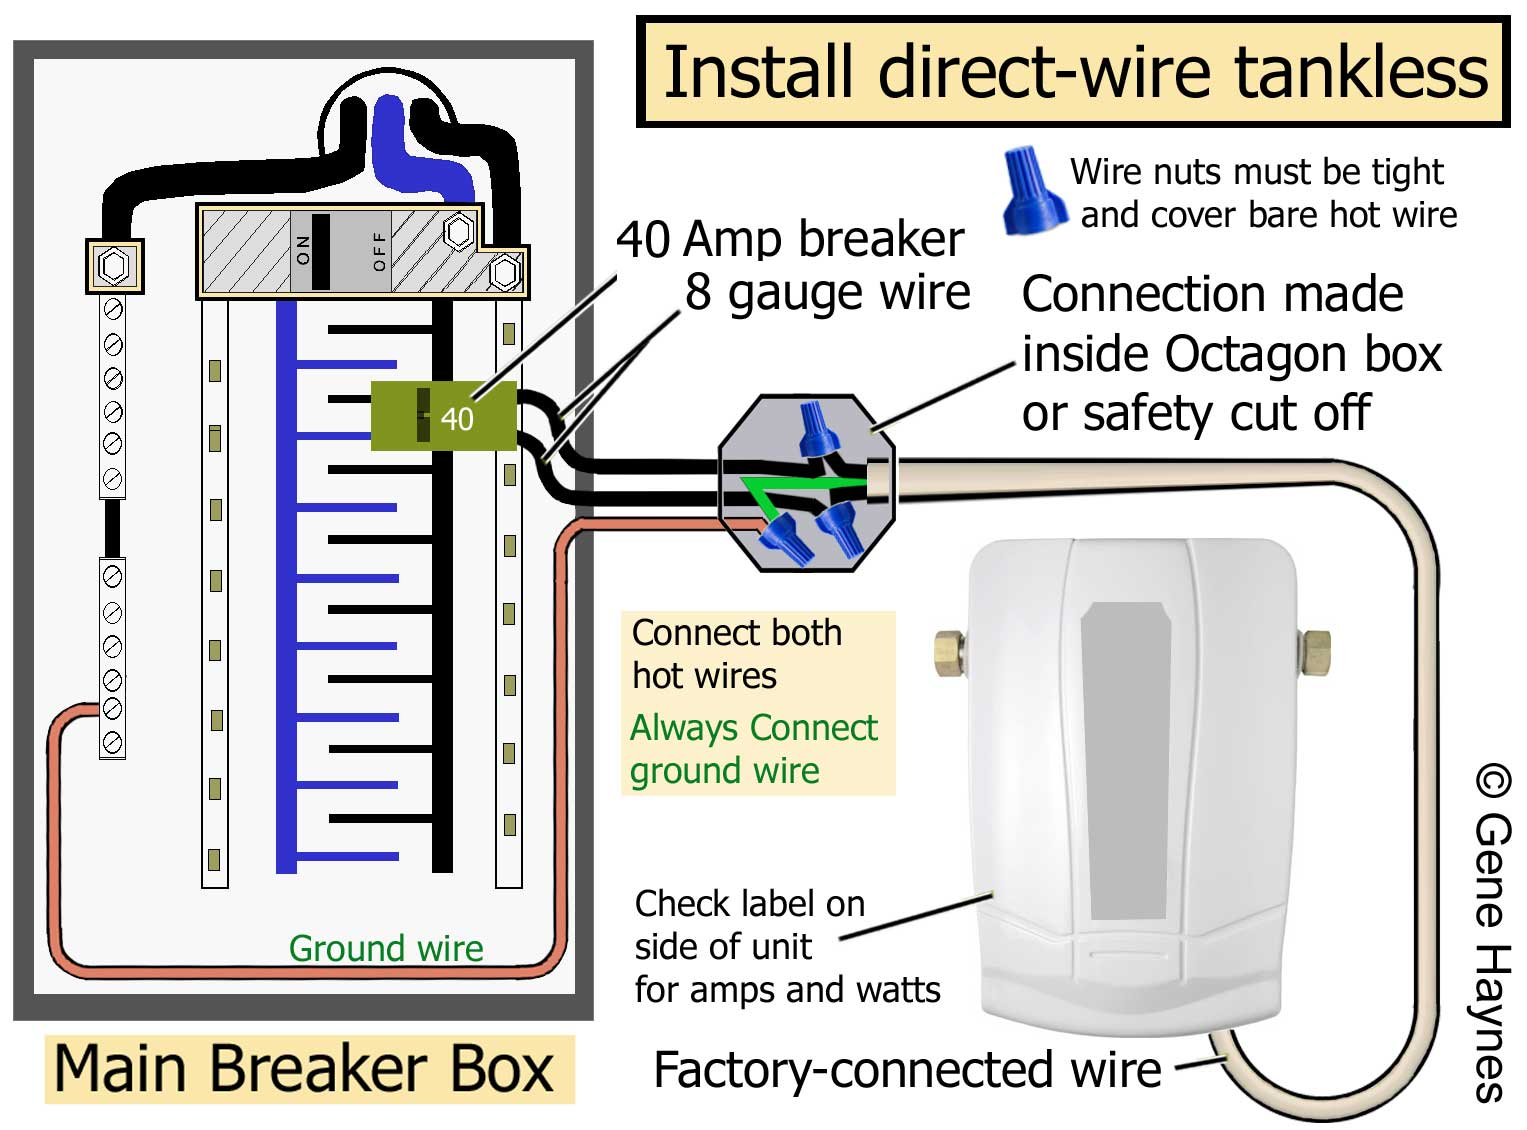 hight resolution of larger image factory connected wire or pigtail attached to tankless read rating plate on side of unit for amps and watts